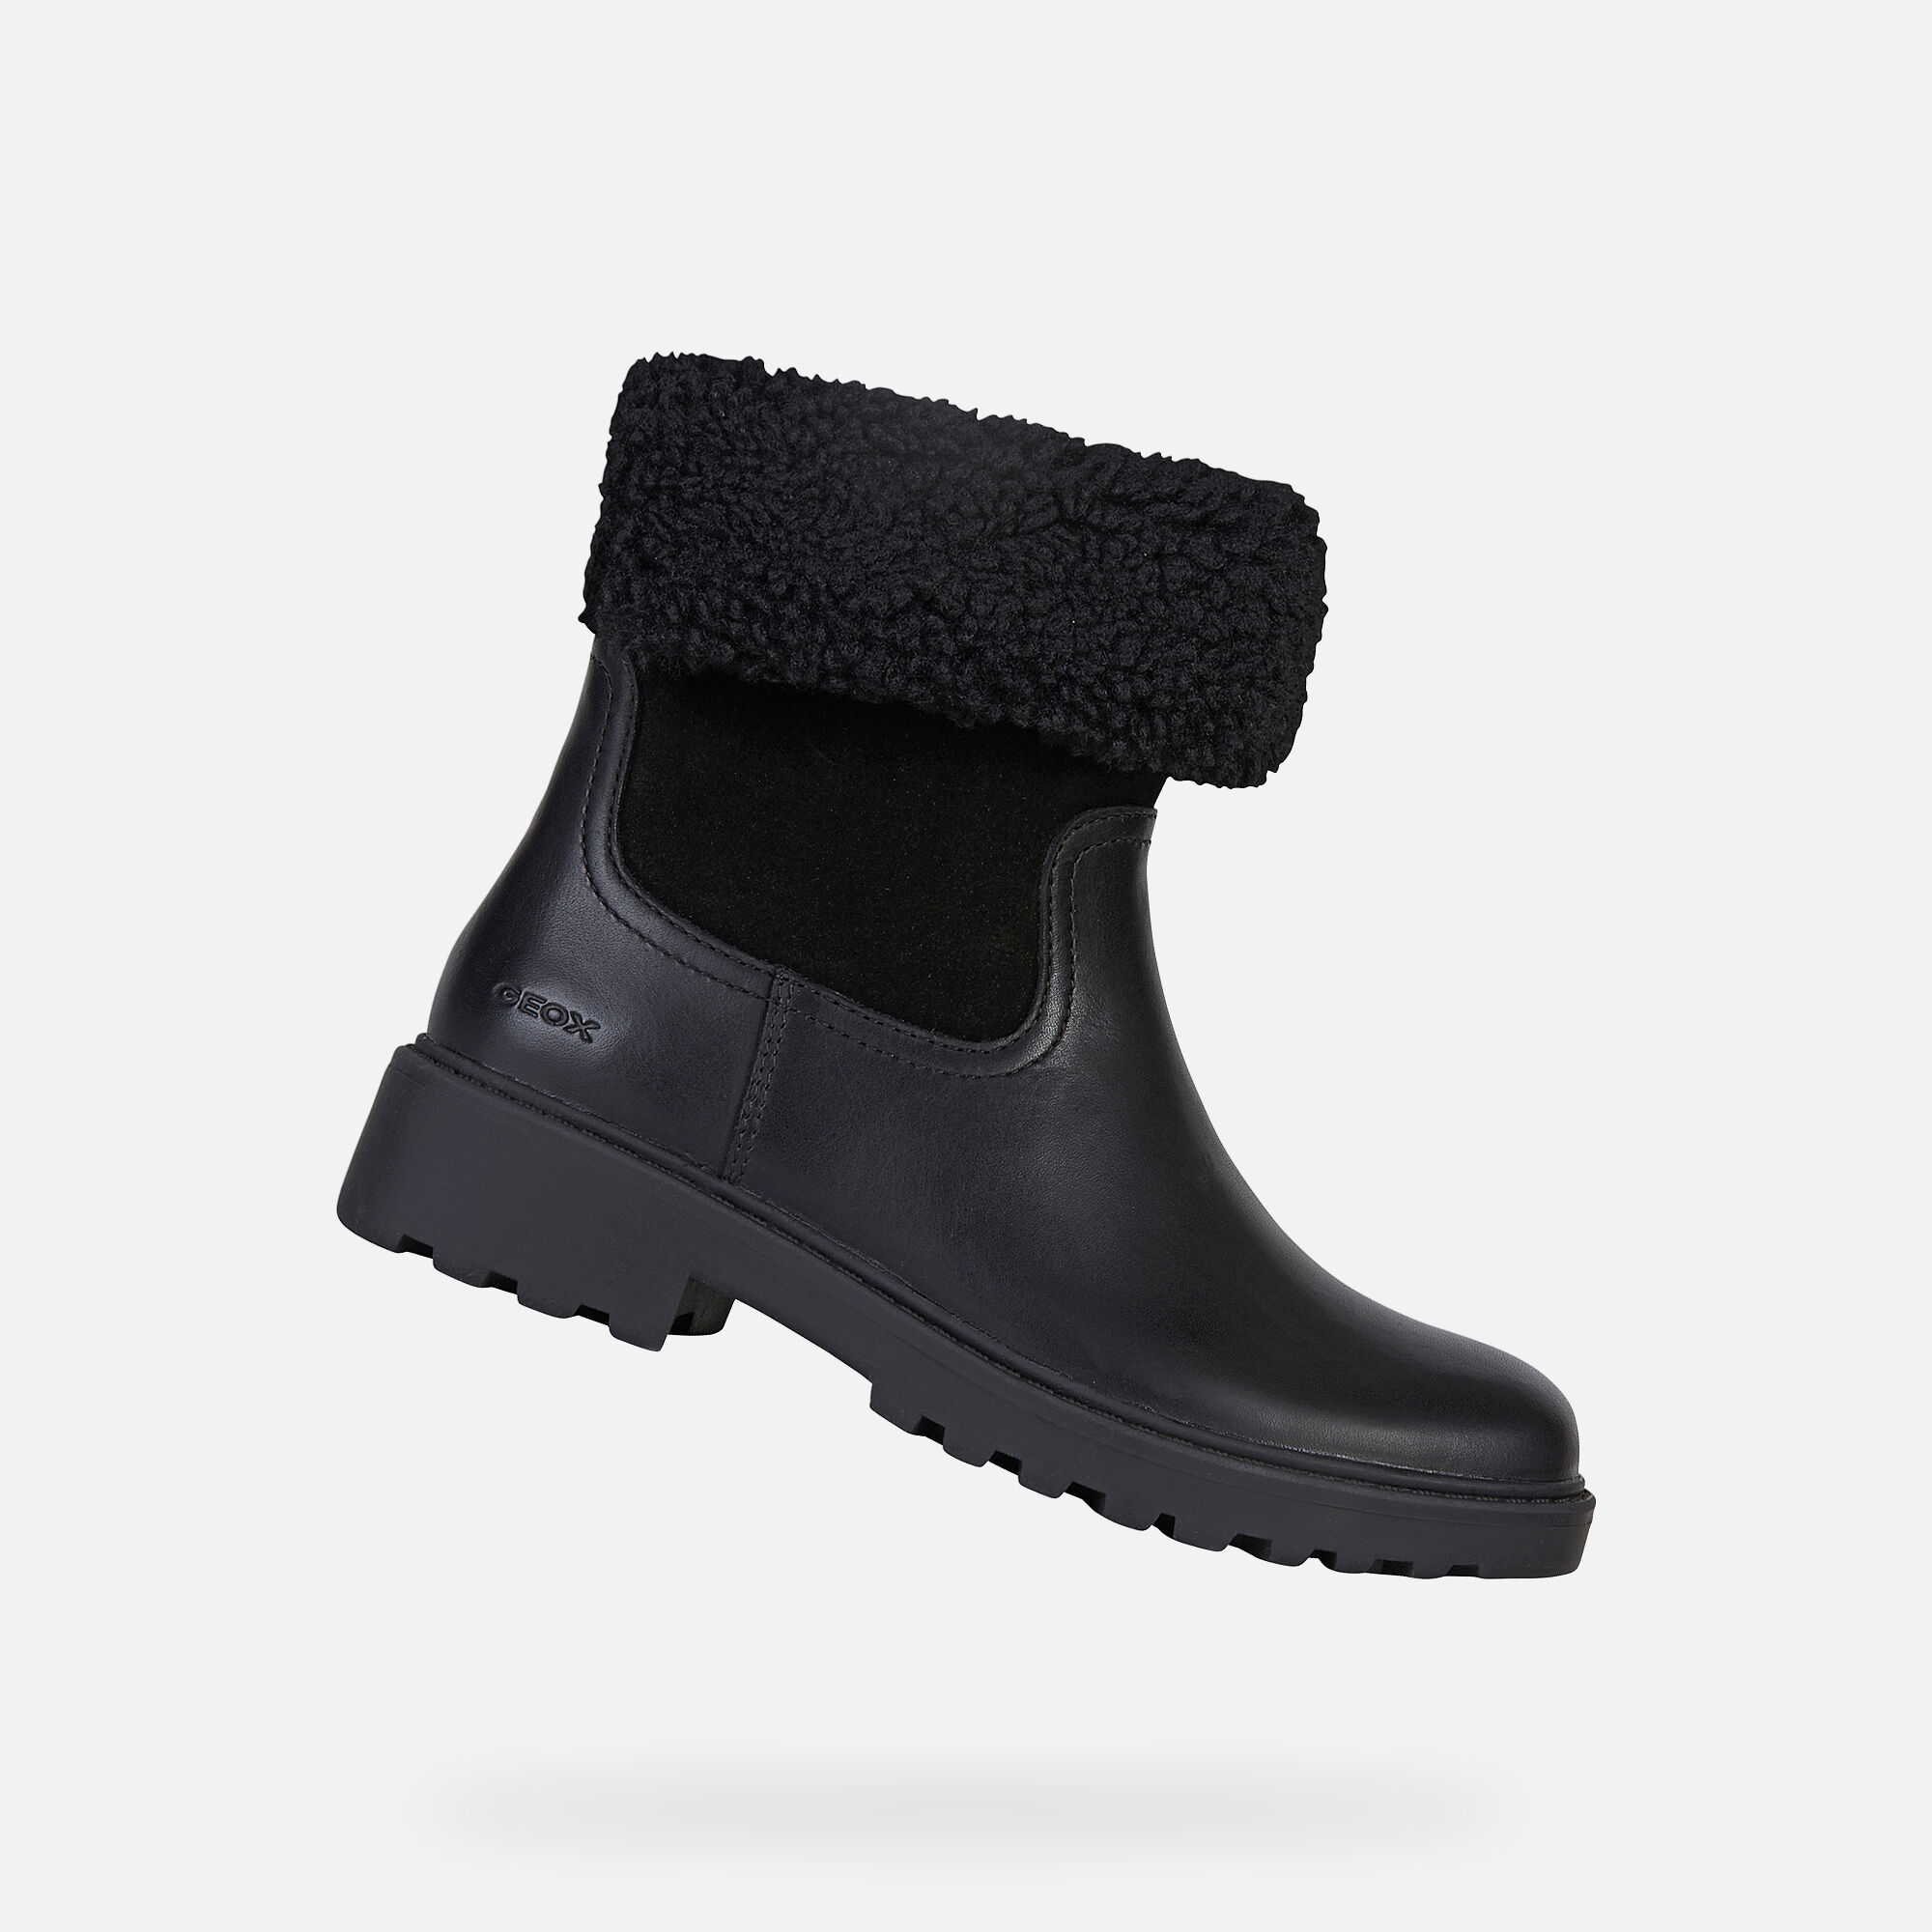 CASEY GIRL - BOOTS from girls | Geox